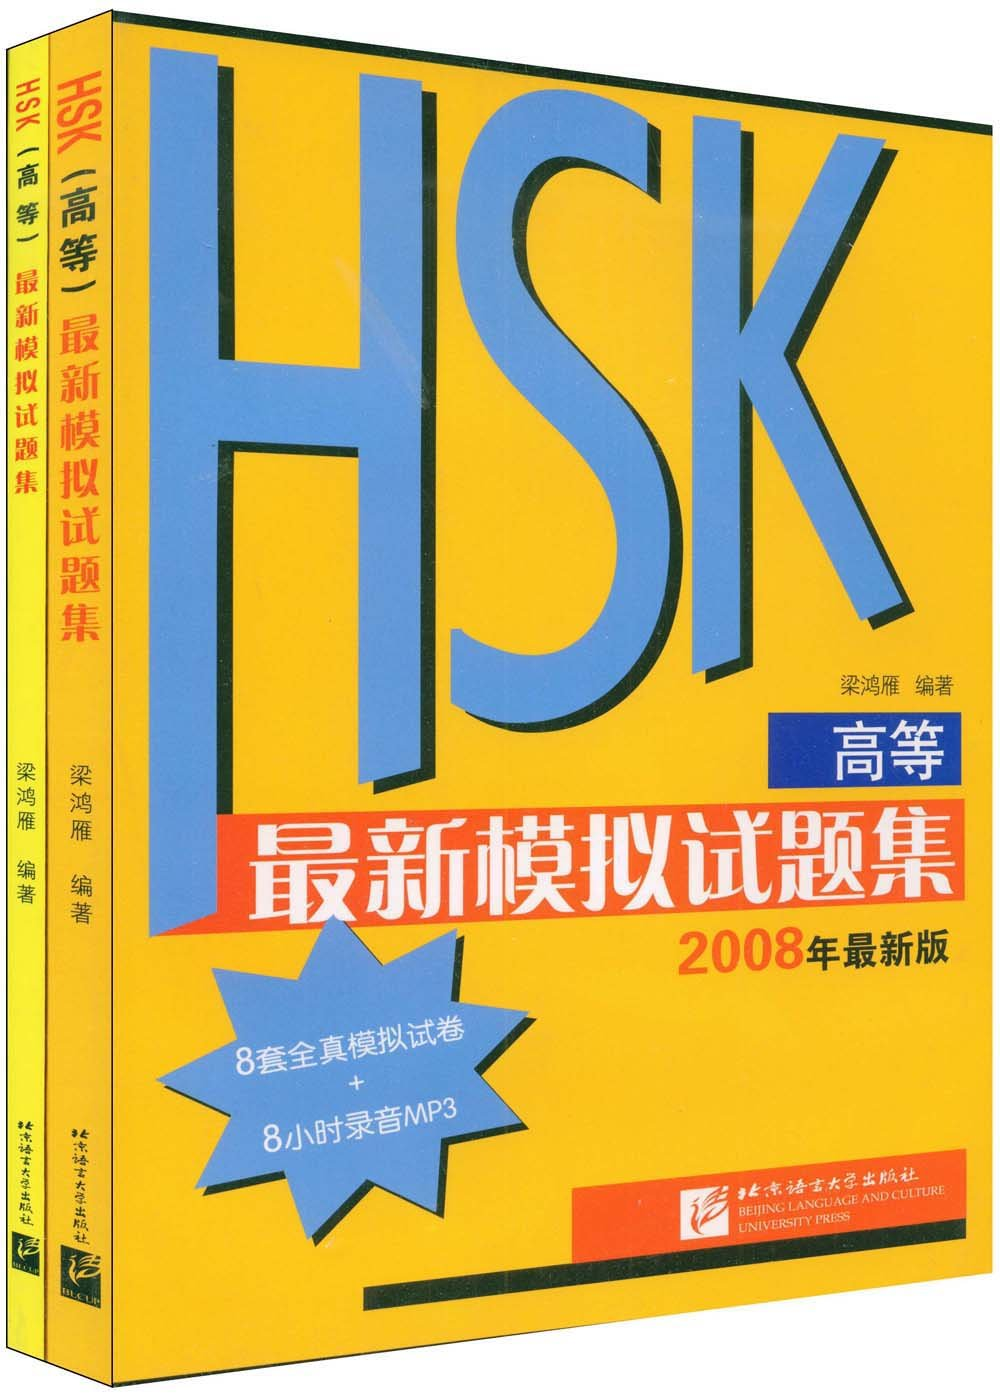 Download Simulated Tests of HSK (Advanced) in 2 vols. with MP3 CD (Chinese Edition) ebook